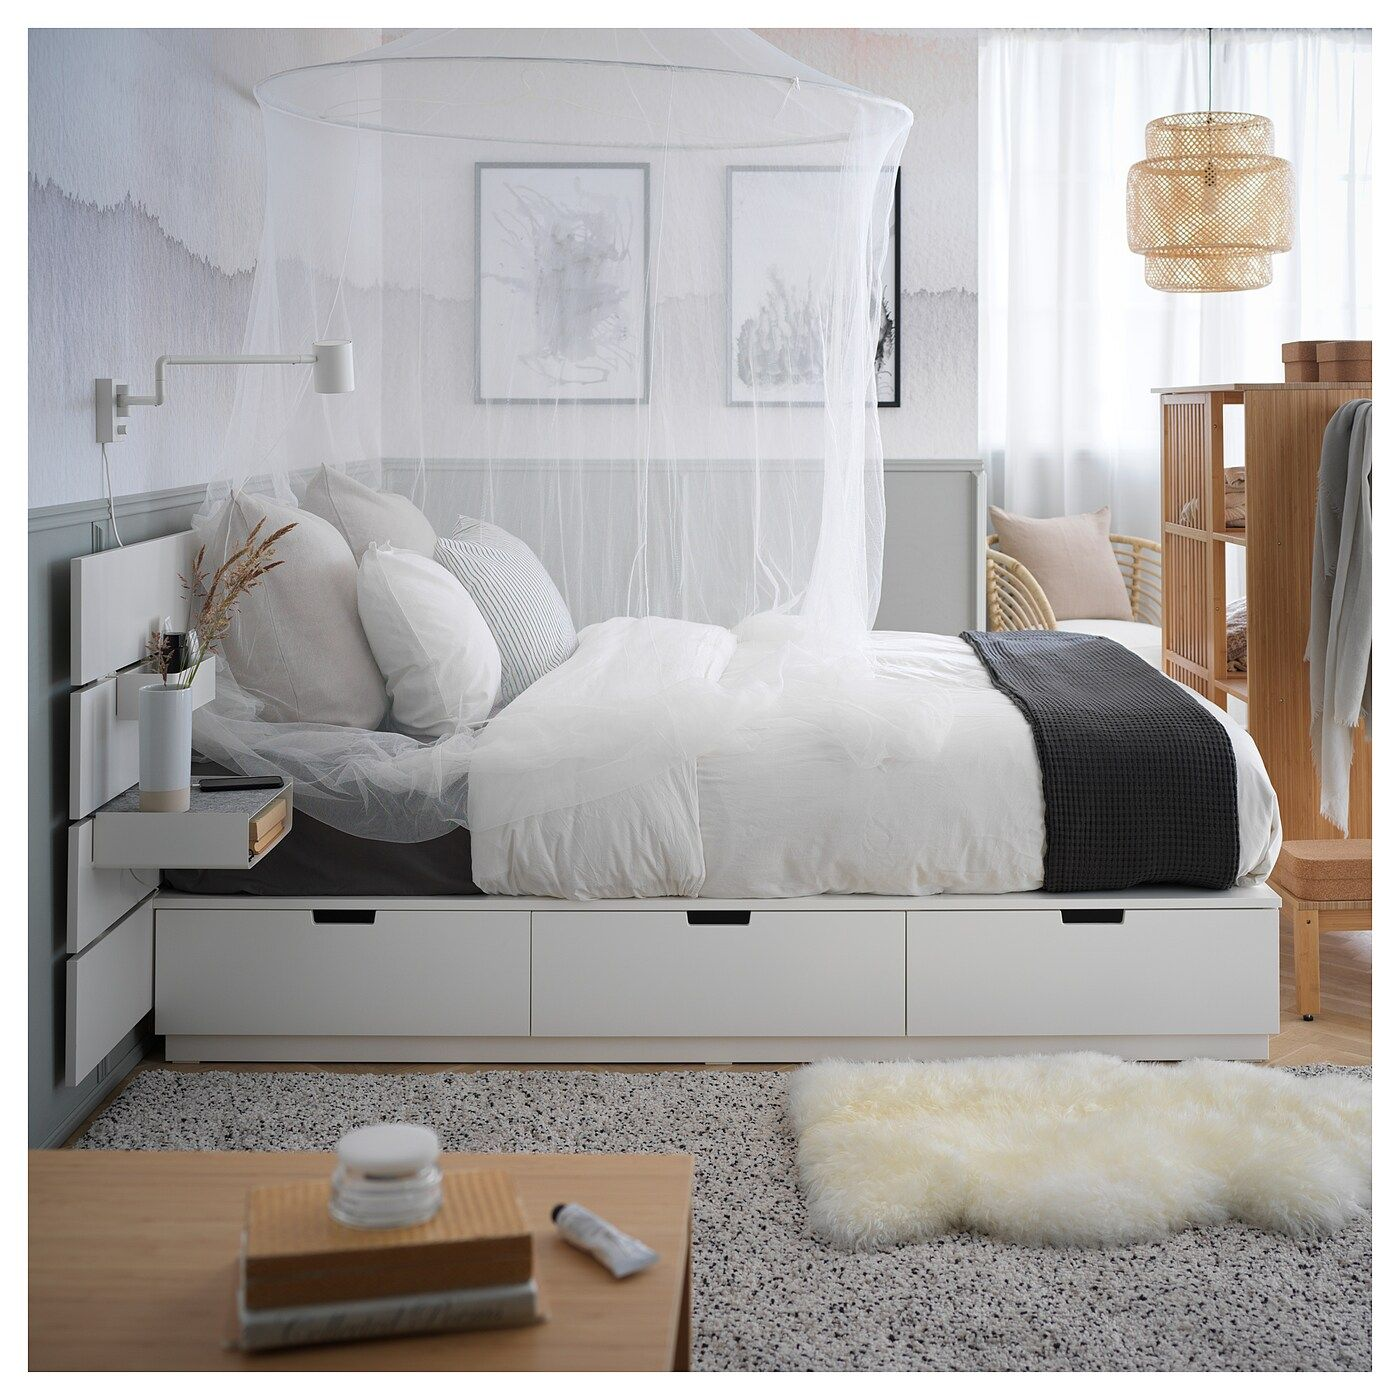 Nordli Bed With Headboard And Storage White Ikea Bed Frame With Storage Headboards For Beds Ikea Storage Bed